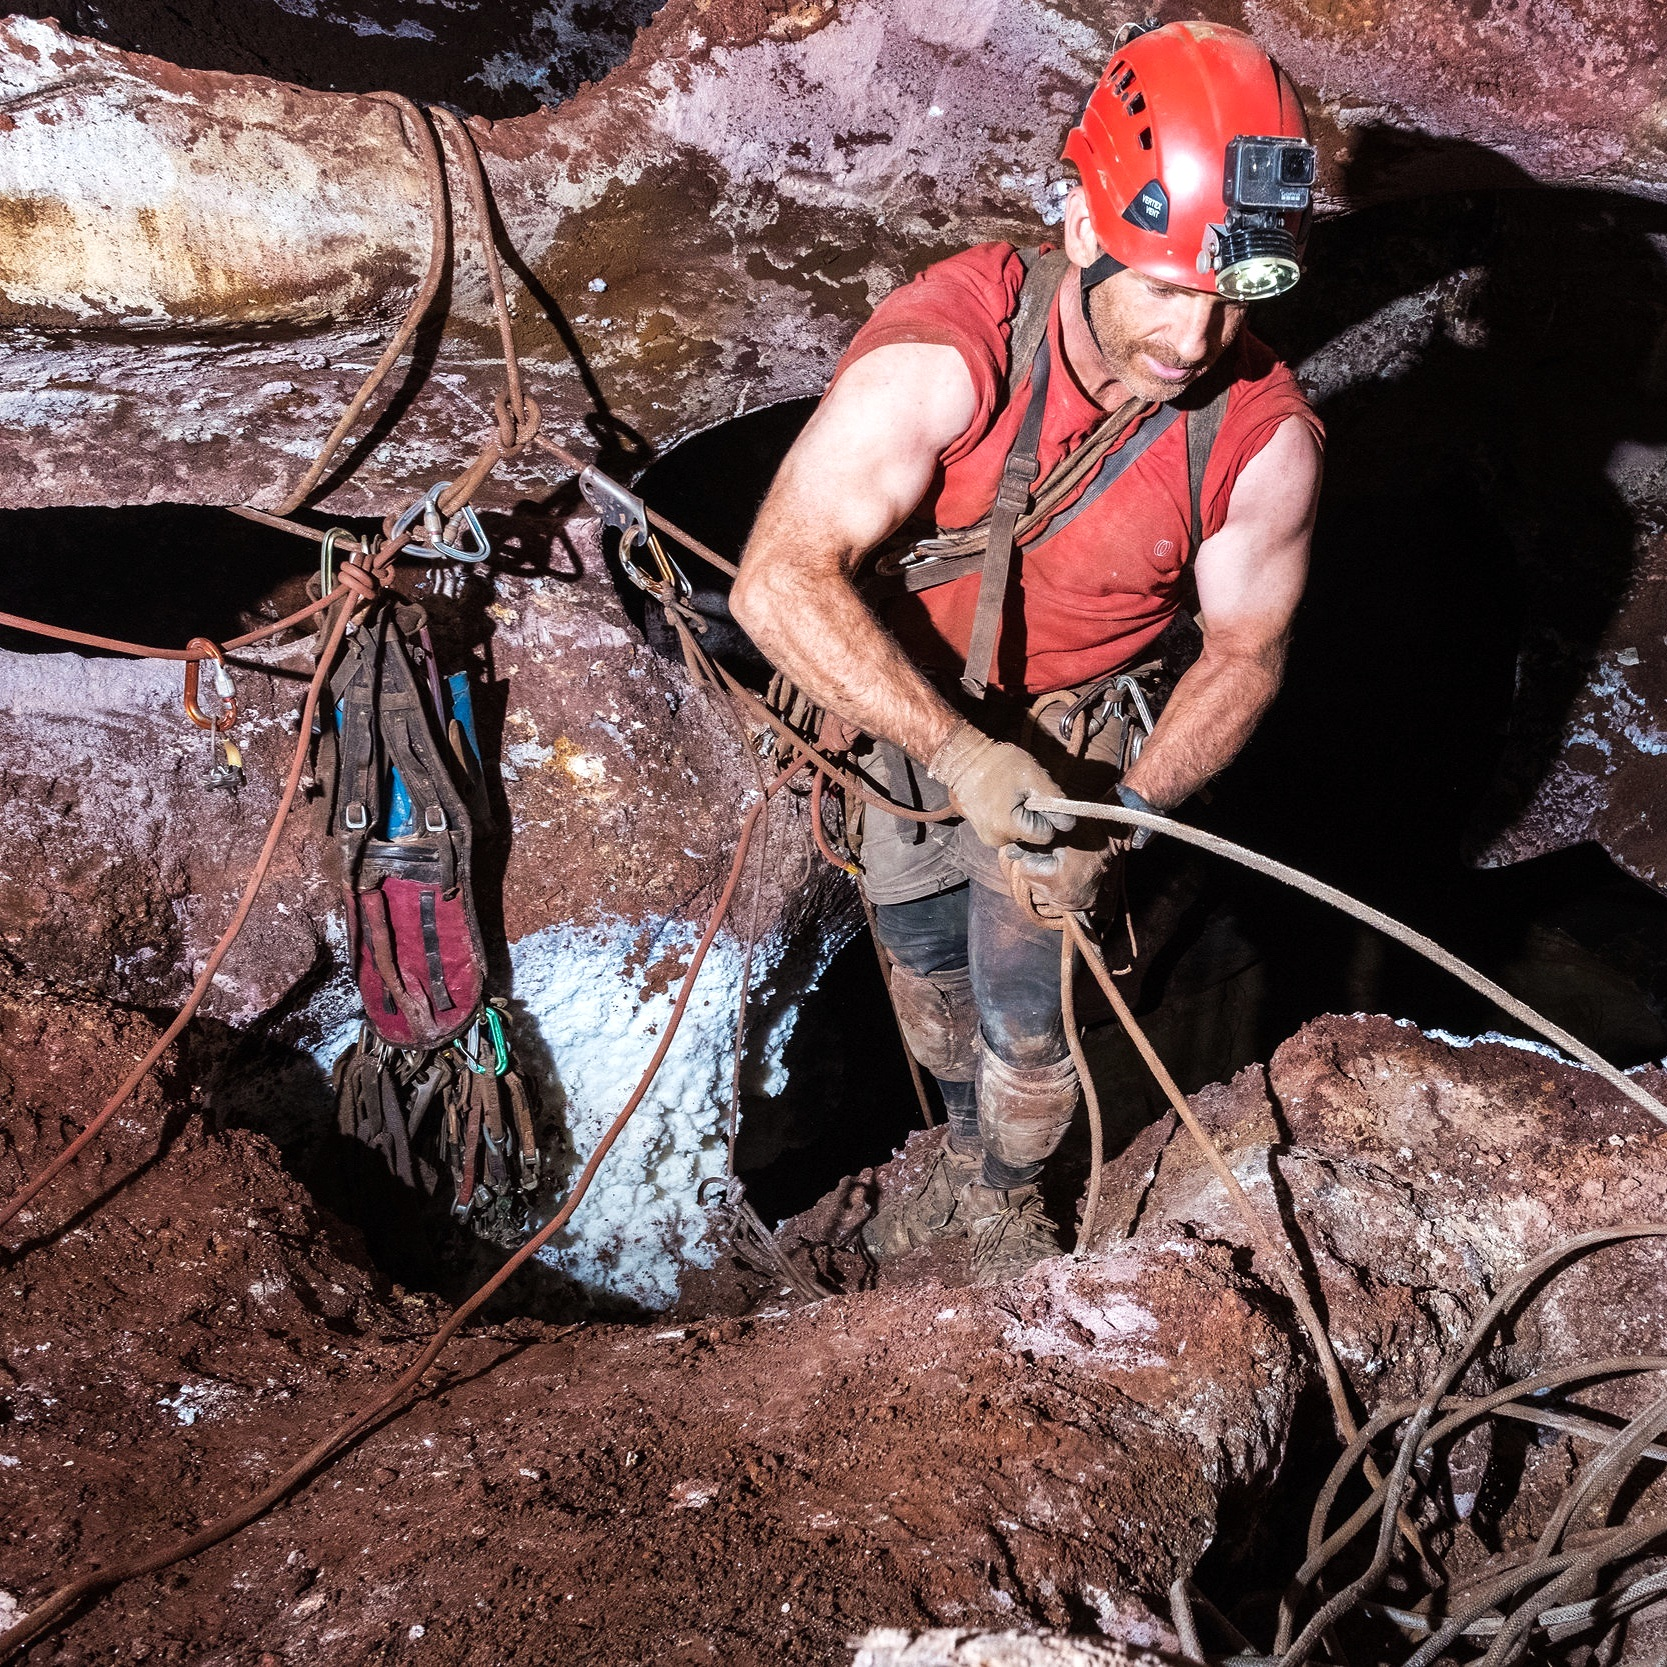 rigging - The proper use of either natural or artificial anchors to rig hand lines, vertical ropes or traverse lines requires knowledge and experience. Rigging vertical pitches underground comes with some unique challenges.